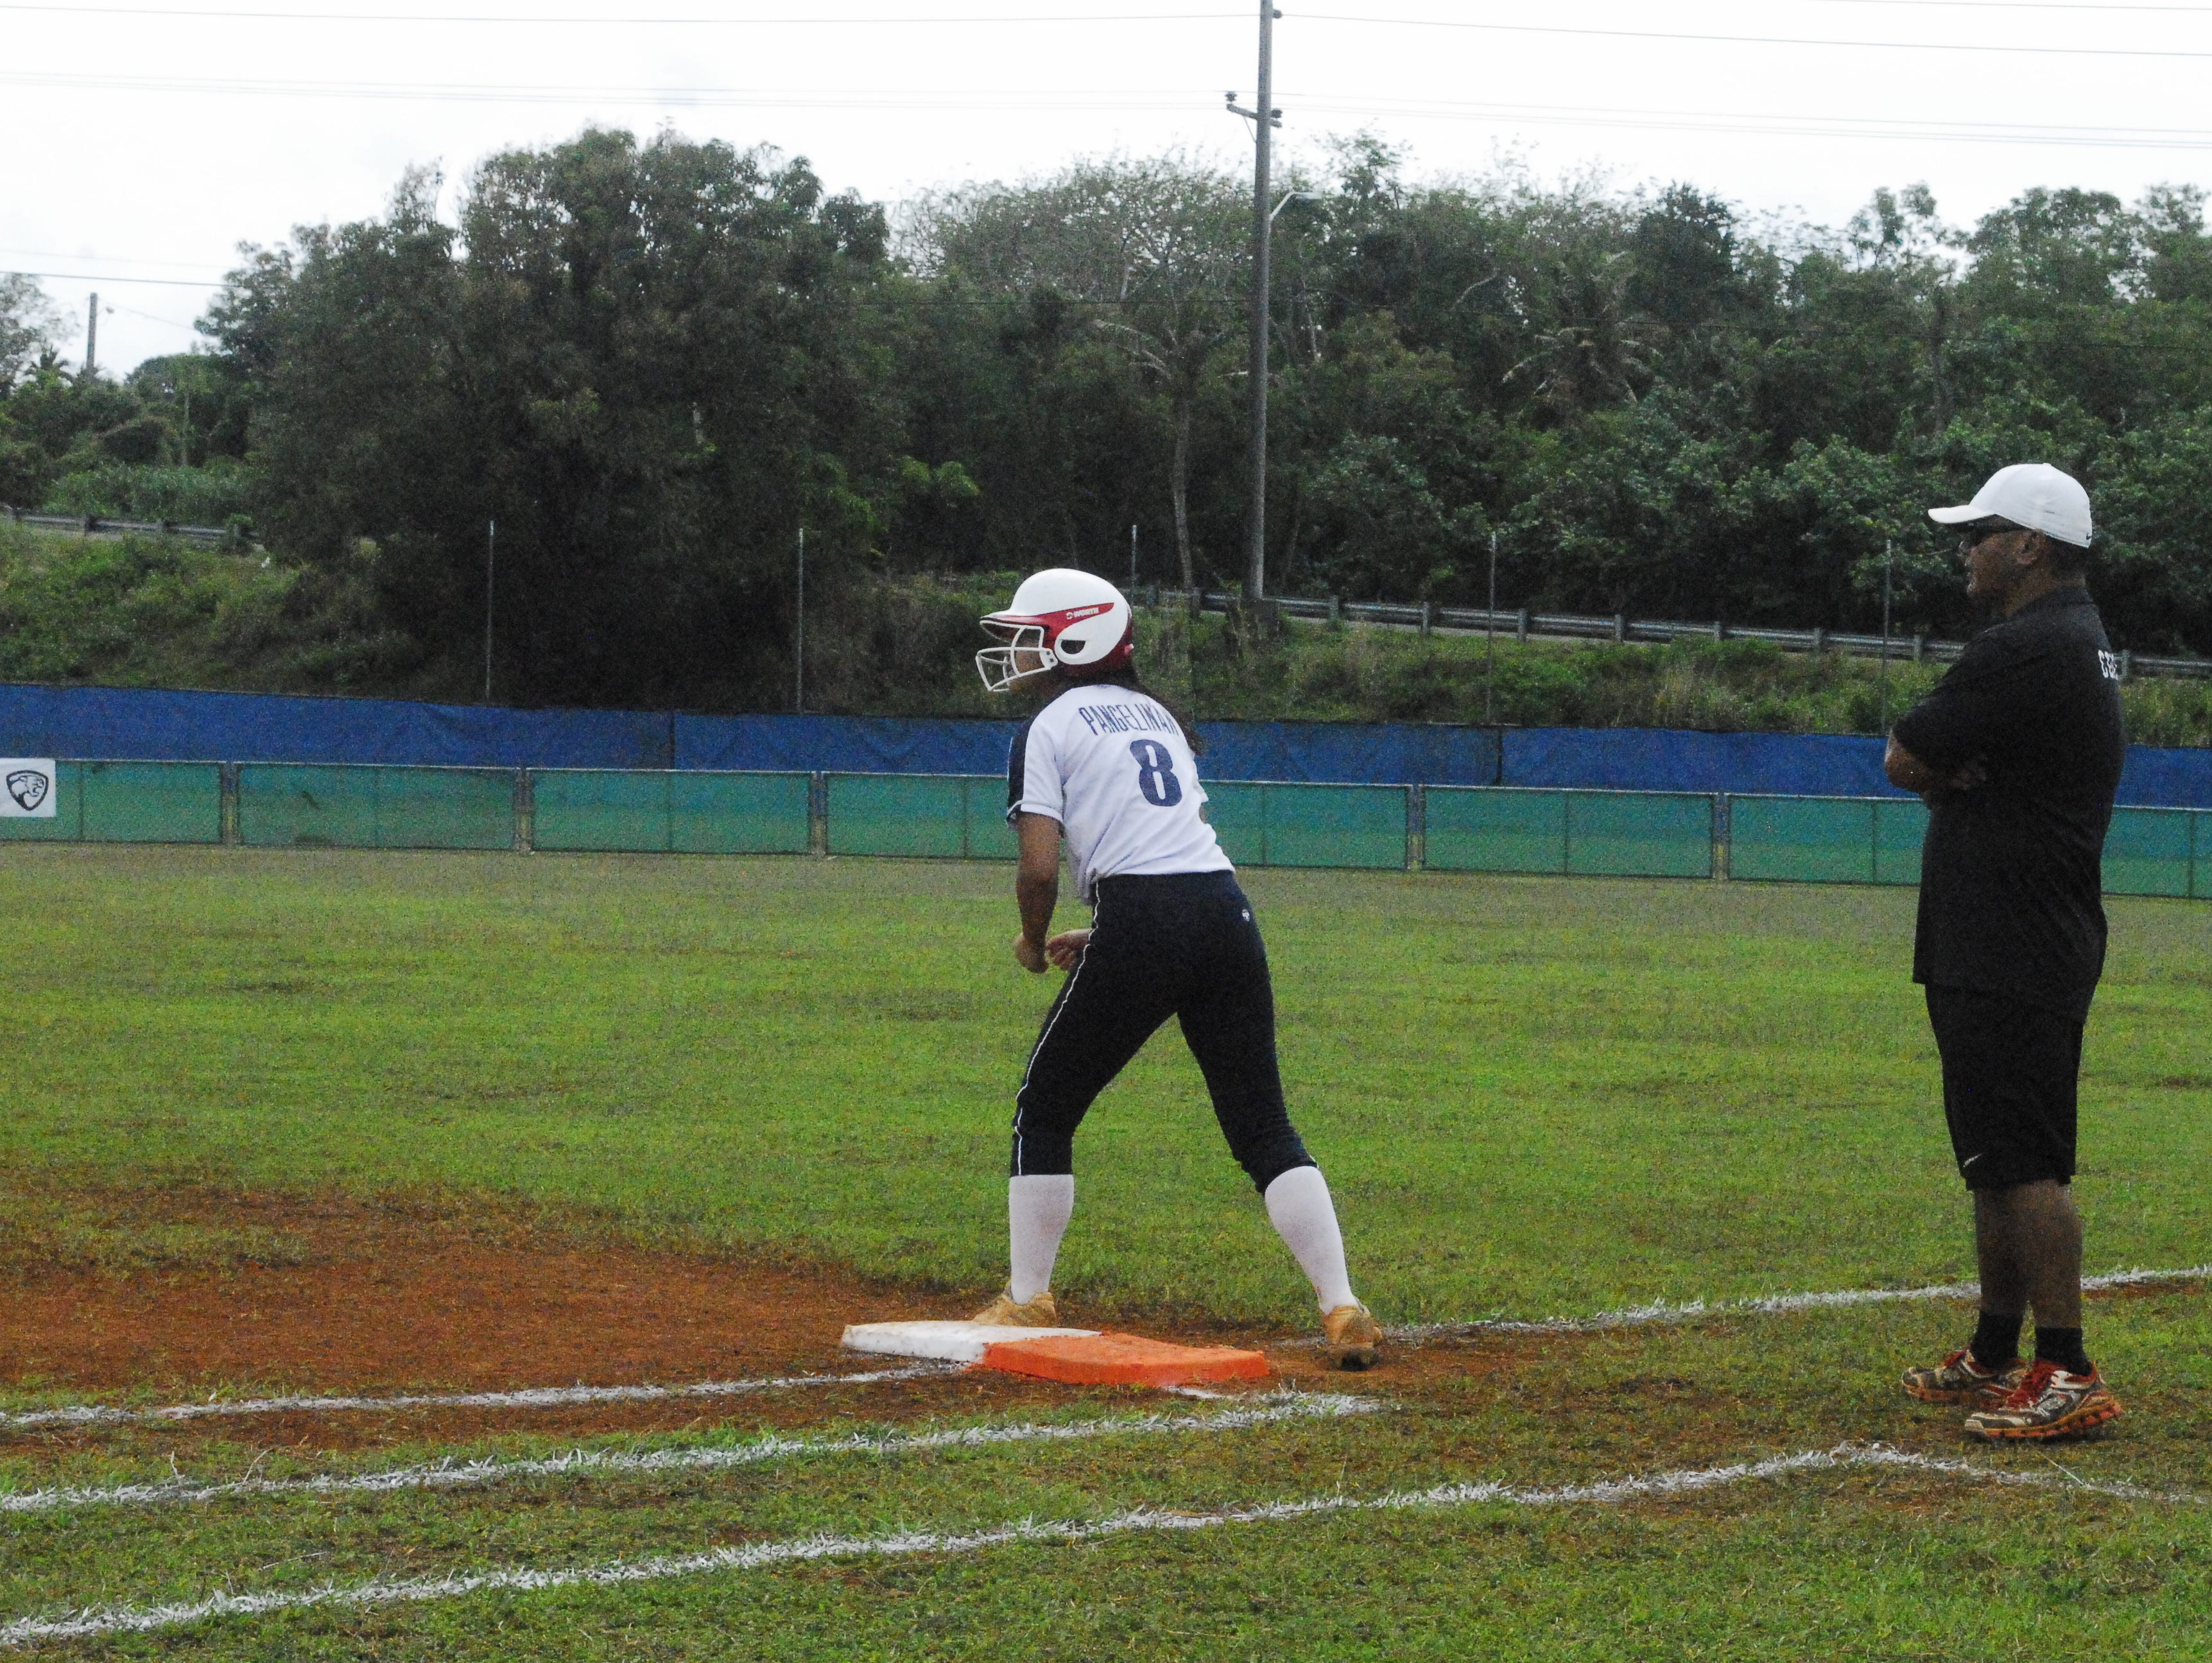 Academy Cougars runner Erin Pangelinan waits for a teammate's hit against Simon Sanchez during their IIAAG High School Girls Softball game on Saturday, Feb. 2 at Tai Field in Mangilao.